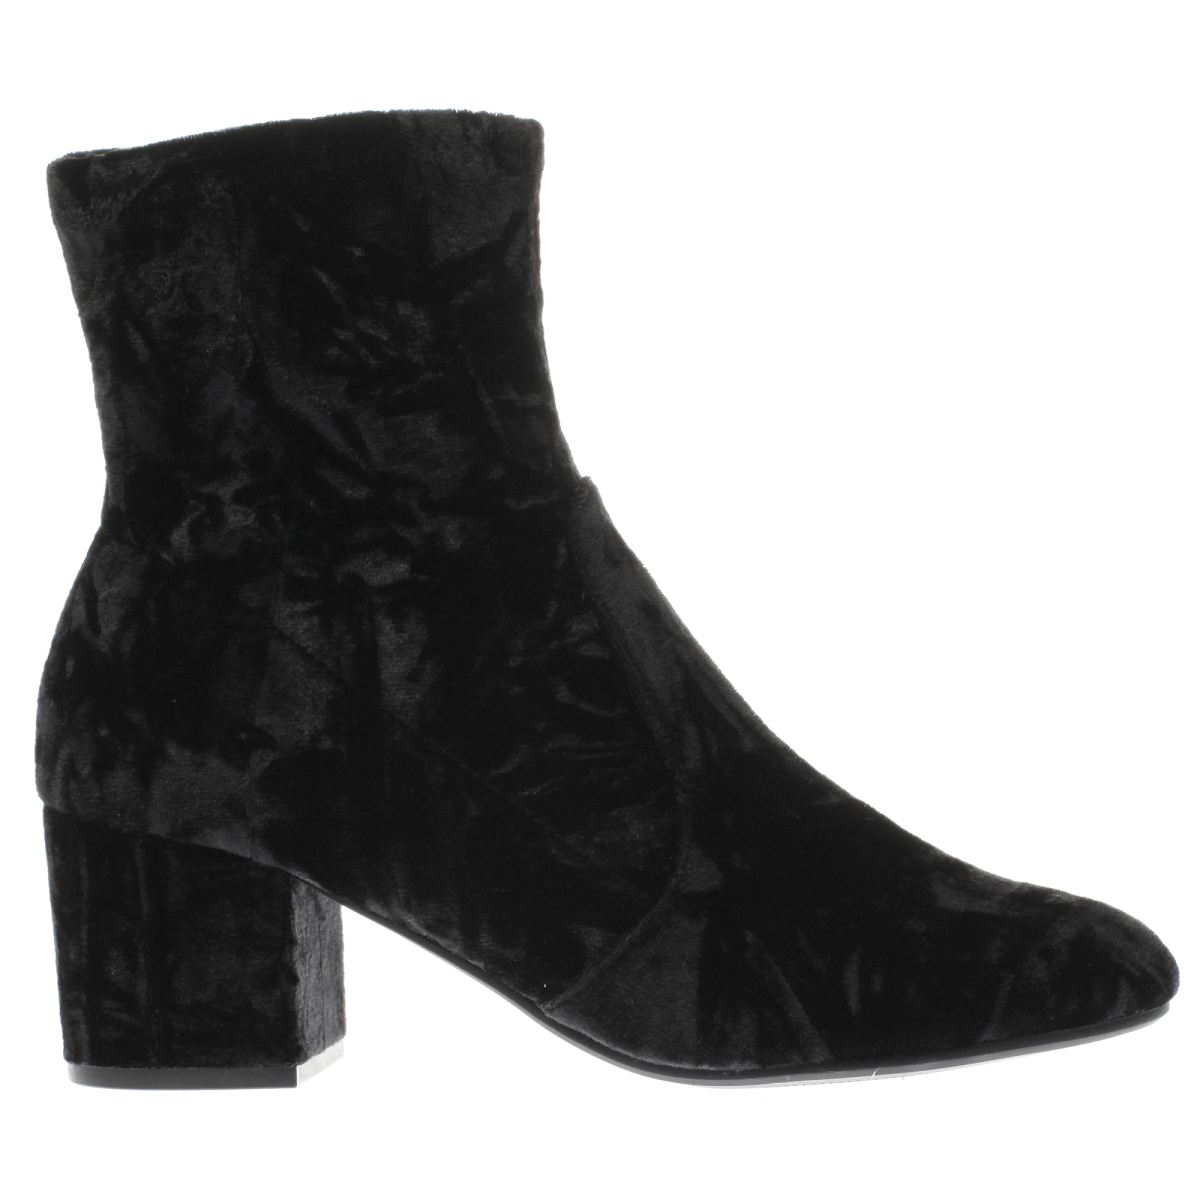 schuh black opposites attract boots